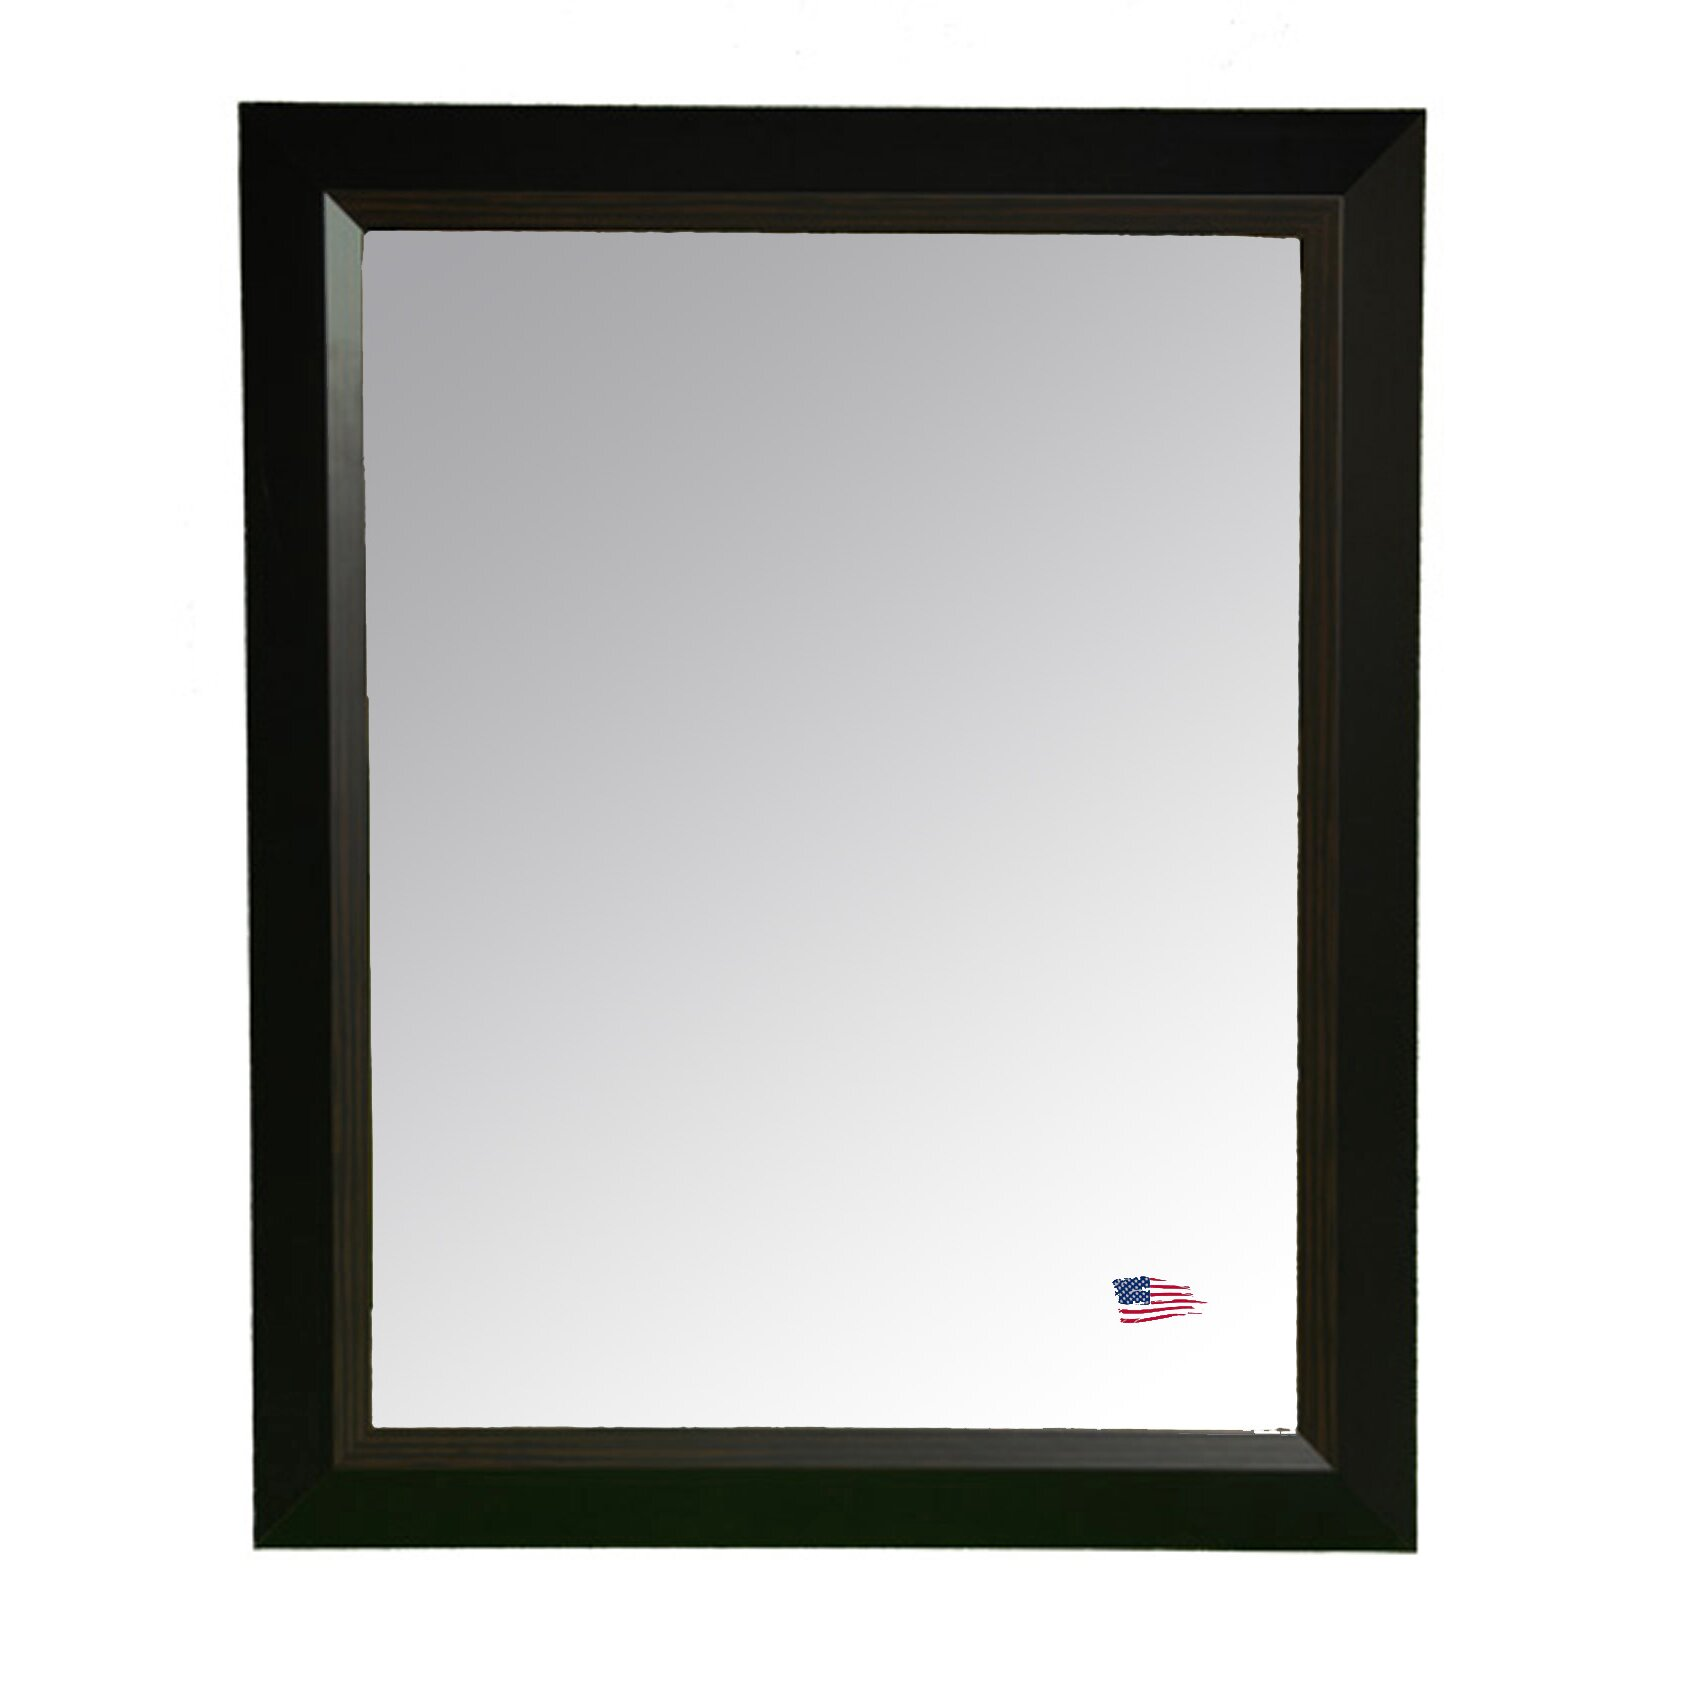 Rayne mirrors brown grain black wall mirror reviews for Black wall mirror